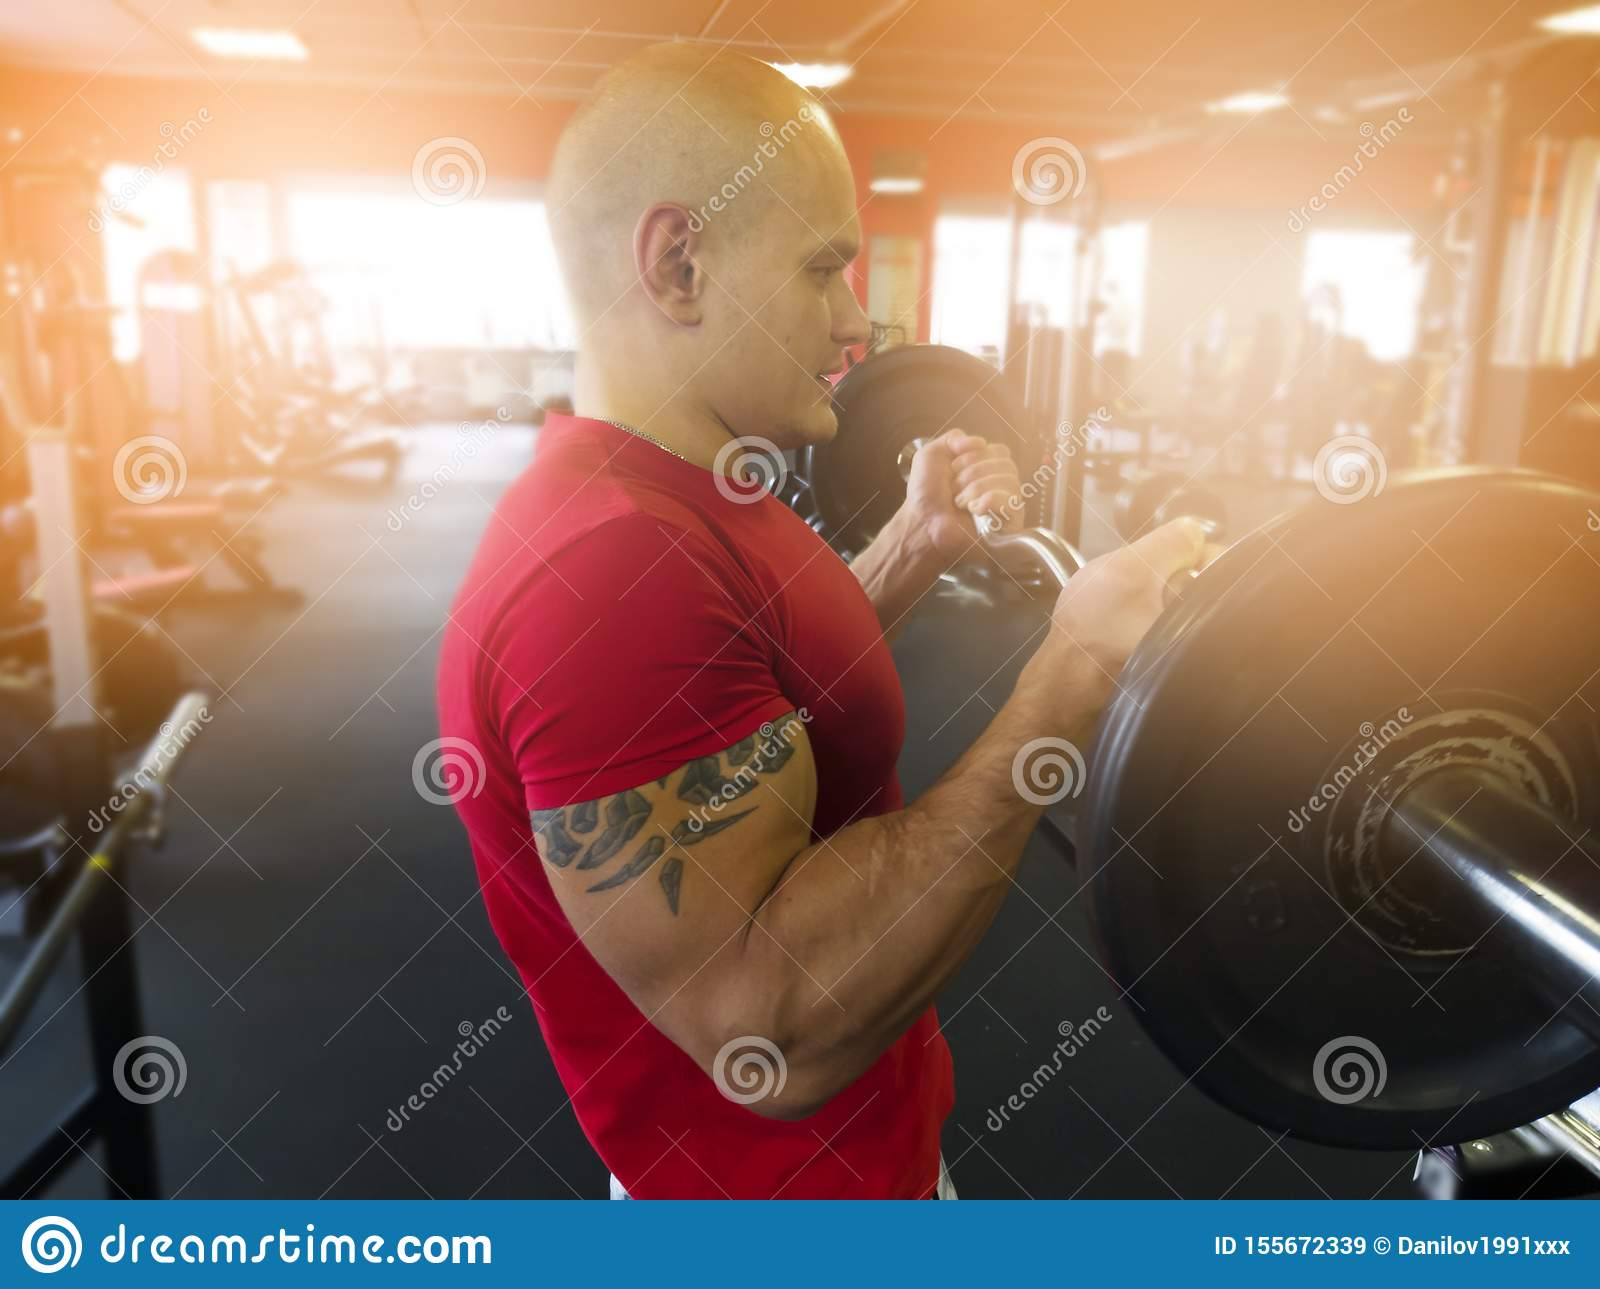 Equipment For Training In The Gym Stock Image Image Of Muscles Lifting 155672339